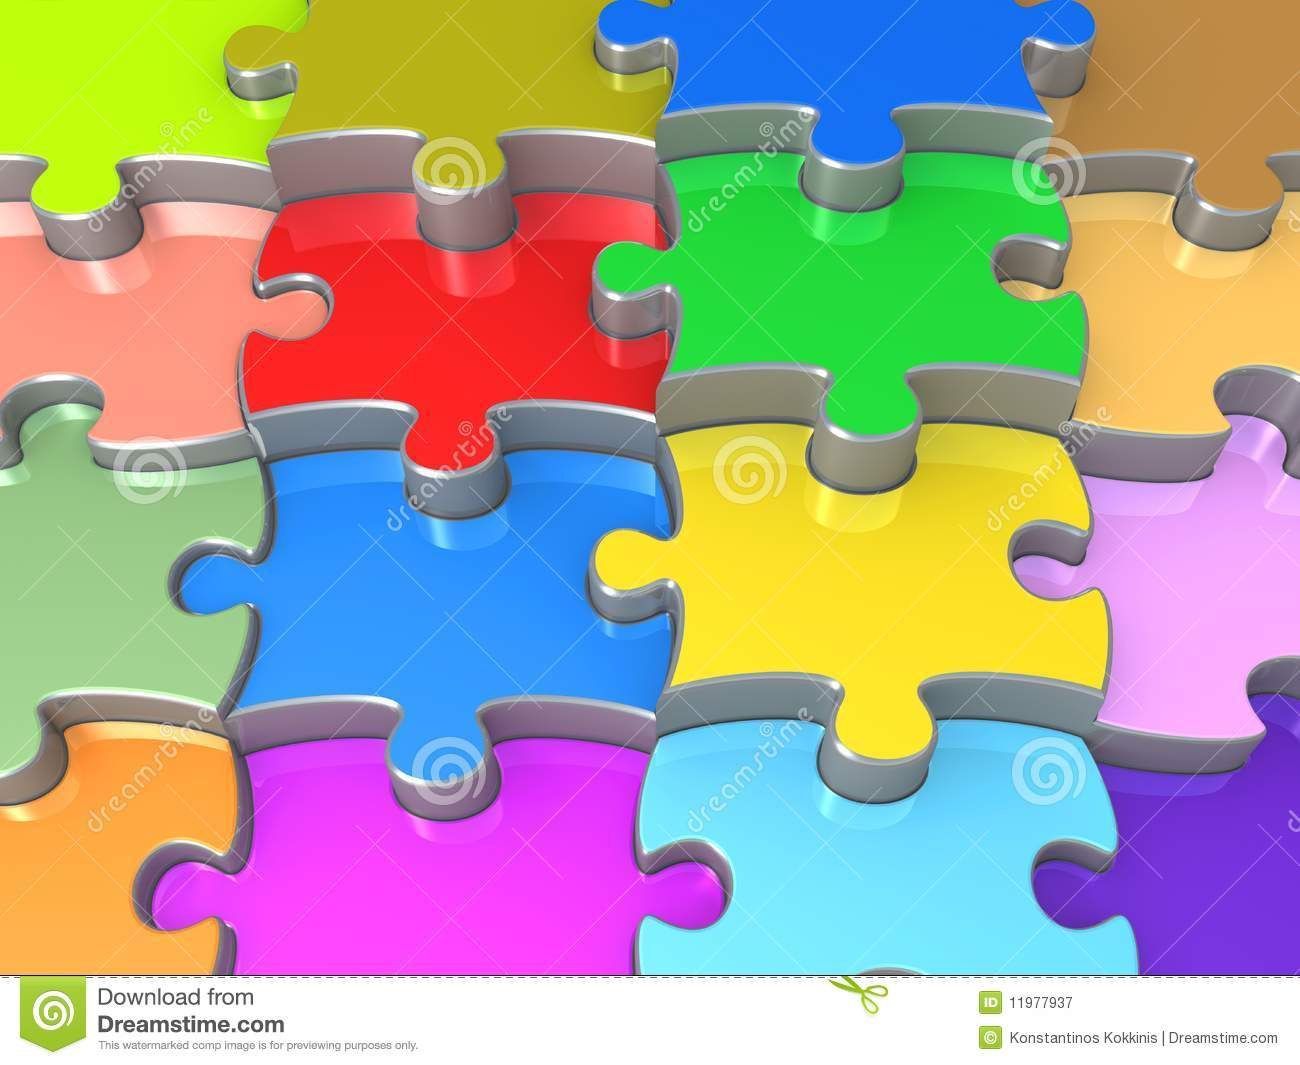 3d jigsaw puzzle royalty free stock photography image 11977937